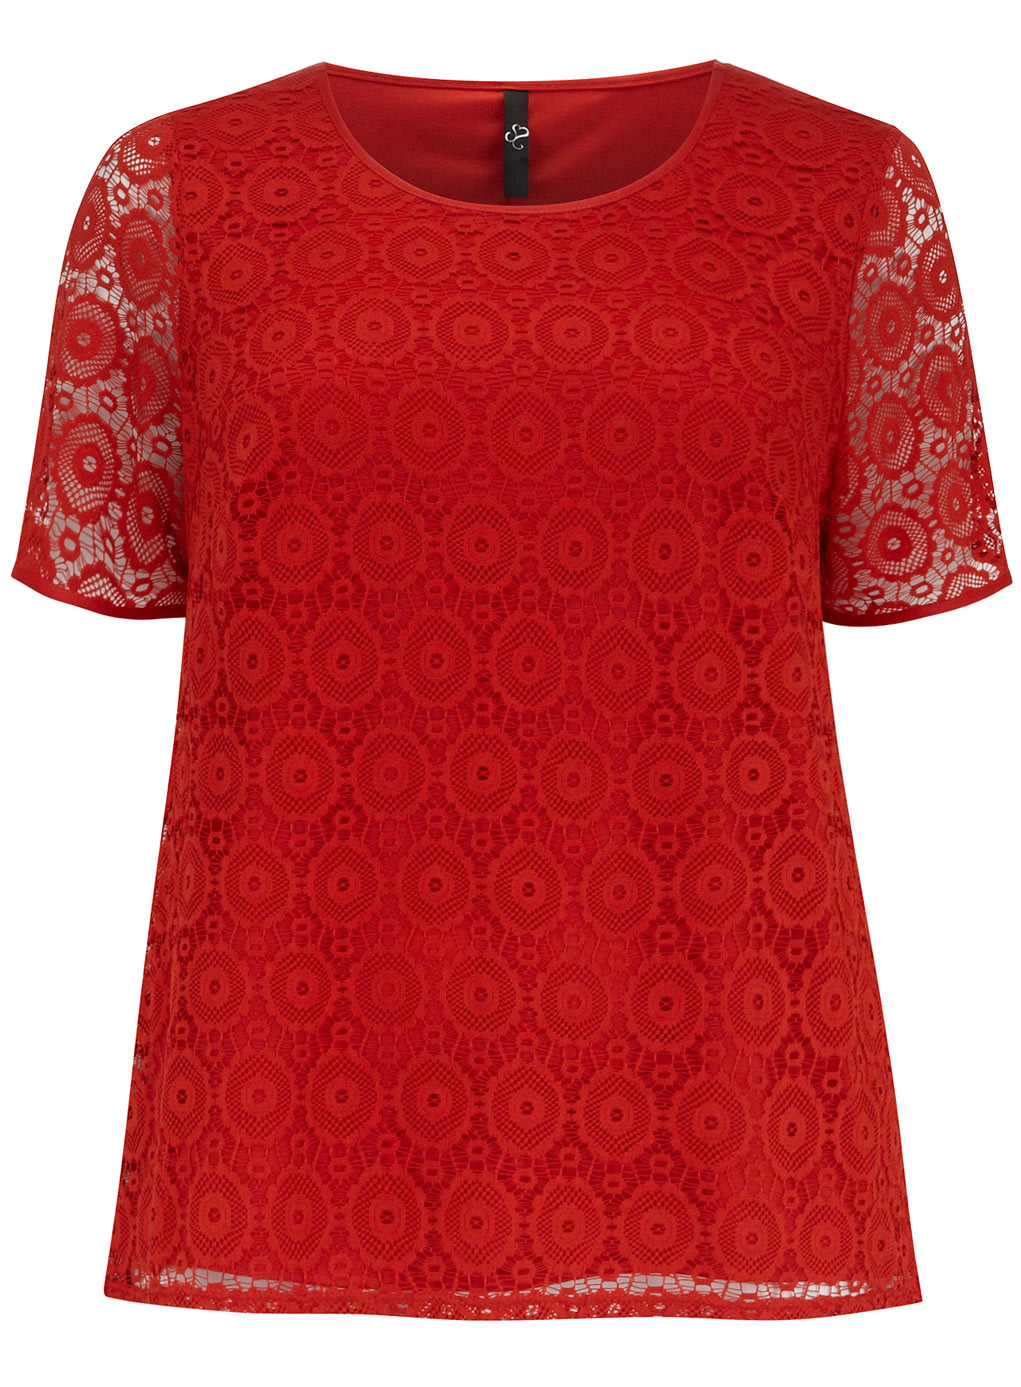 Orange Lace Shell Top - neckline: round neck; length: below the bottom; predominant colour: true red; occasions: casual, creative work; style: top; fibres: polyester/polyamide - 100%; fit: loose; sleeve length: short sleeve; sleeve style: standard; texture group: lace; pattern type: fabric; pattern: patterned/print; trends: lace; season: s/s 2014